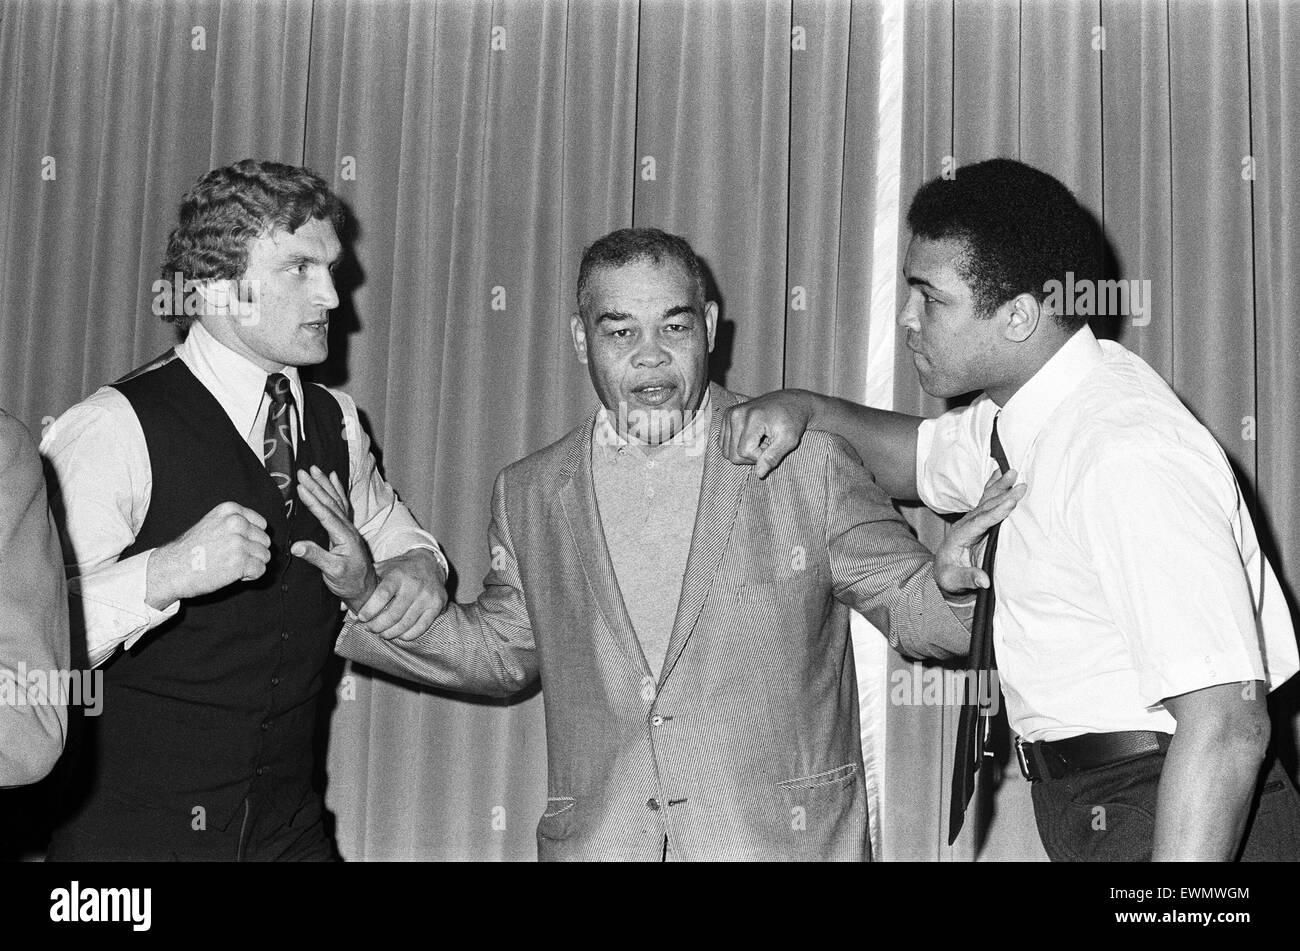 Muhammad Ali and Joe Bugner at a press conference for their upcoming fight. 11th December 1972 - Stock Image